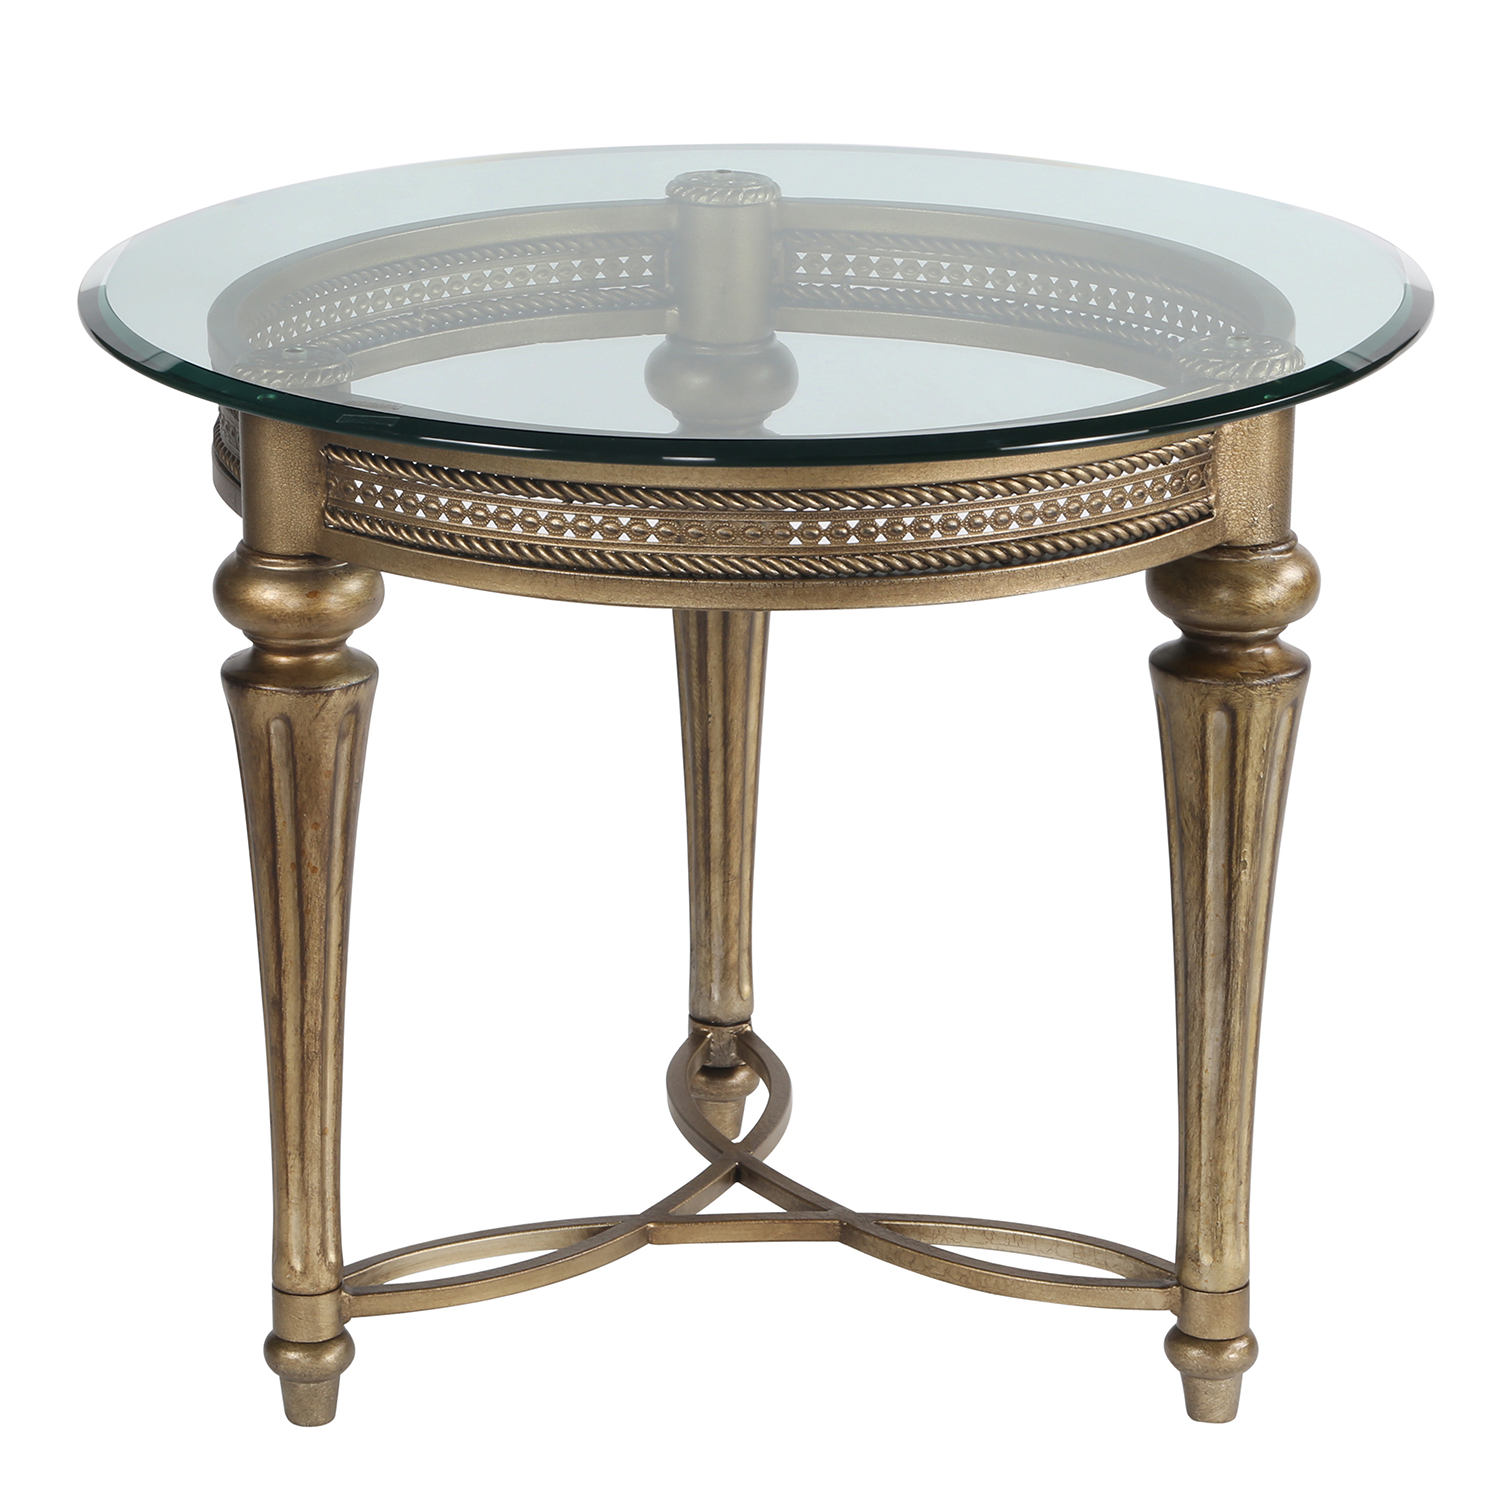 Round Iron & Glass End Table